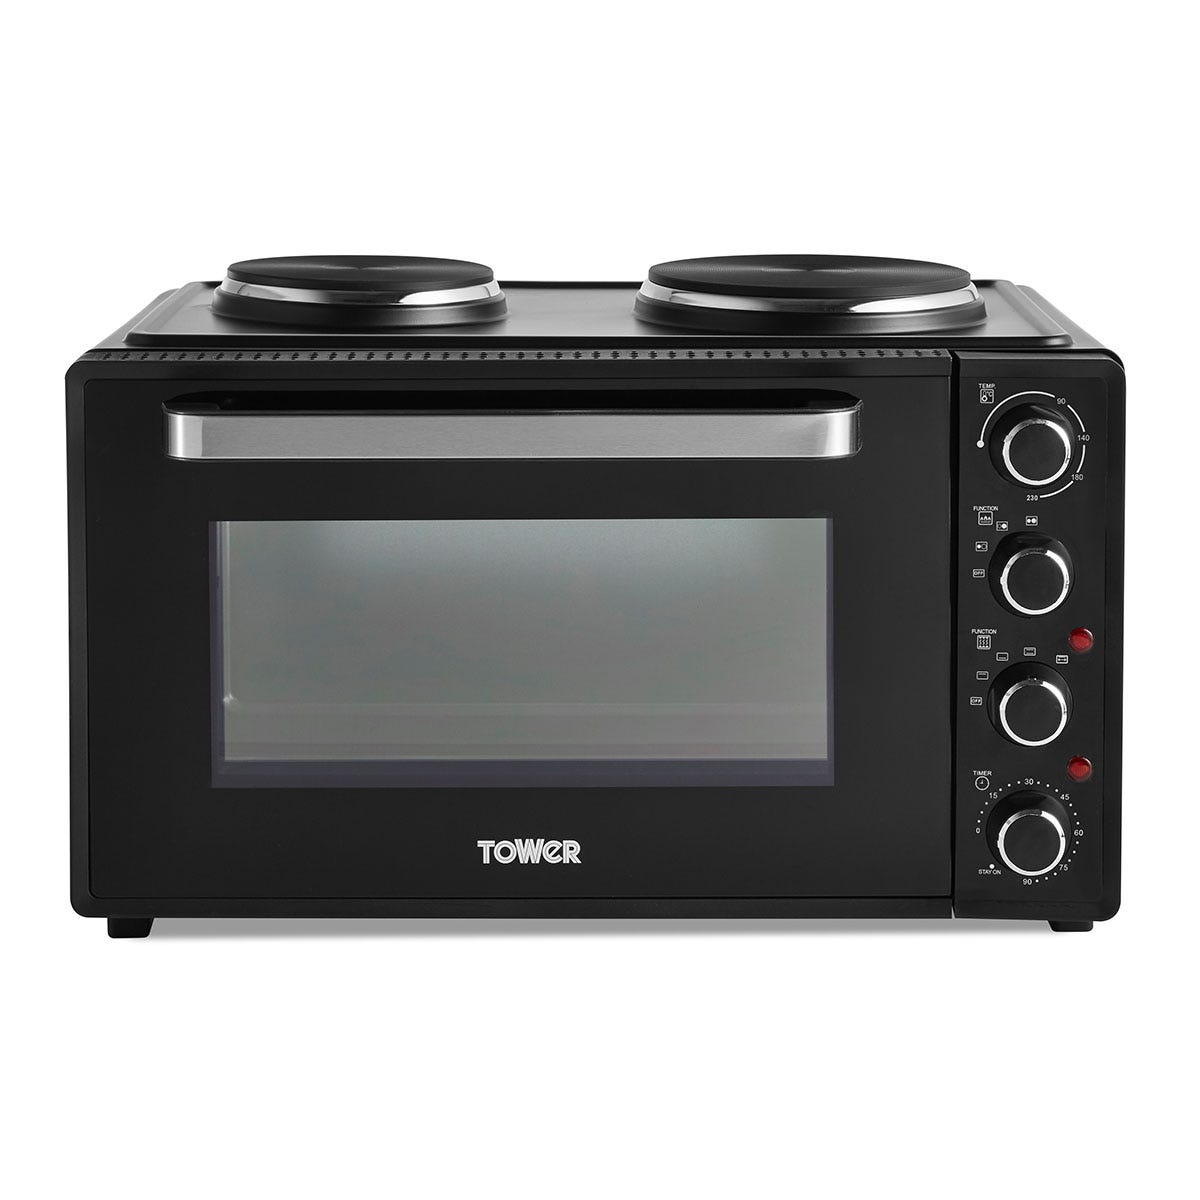 Tower DYT14045 42L Mini Oven with Hobs and Rotisserie Function - Black